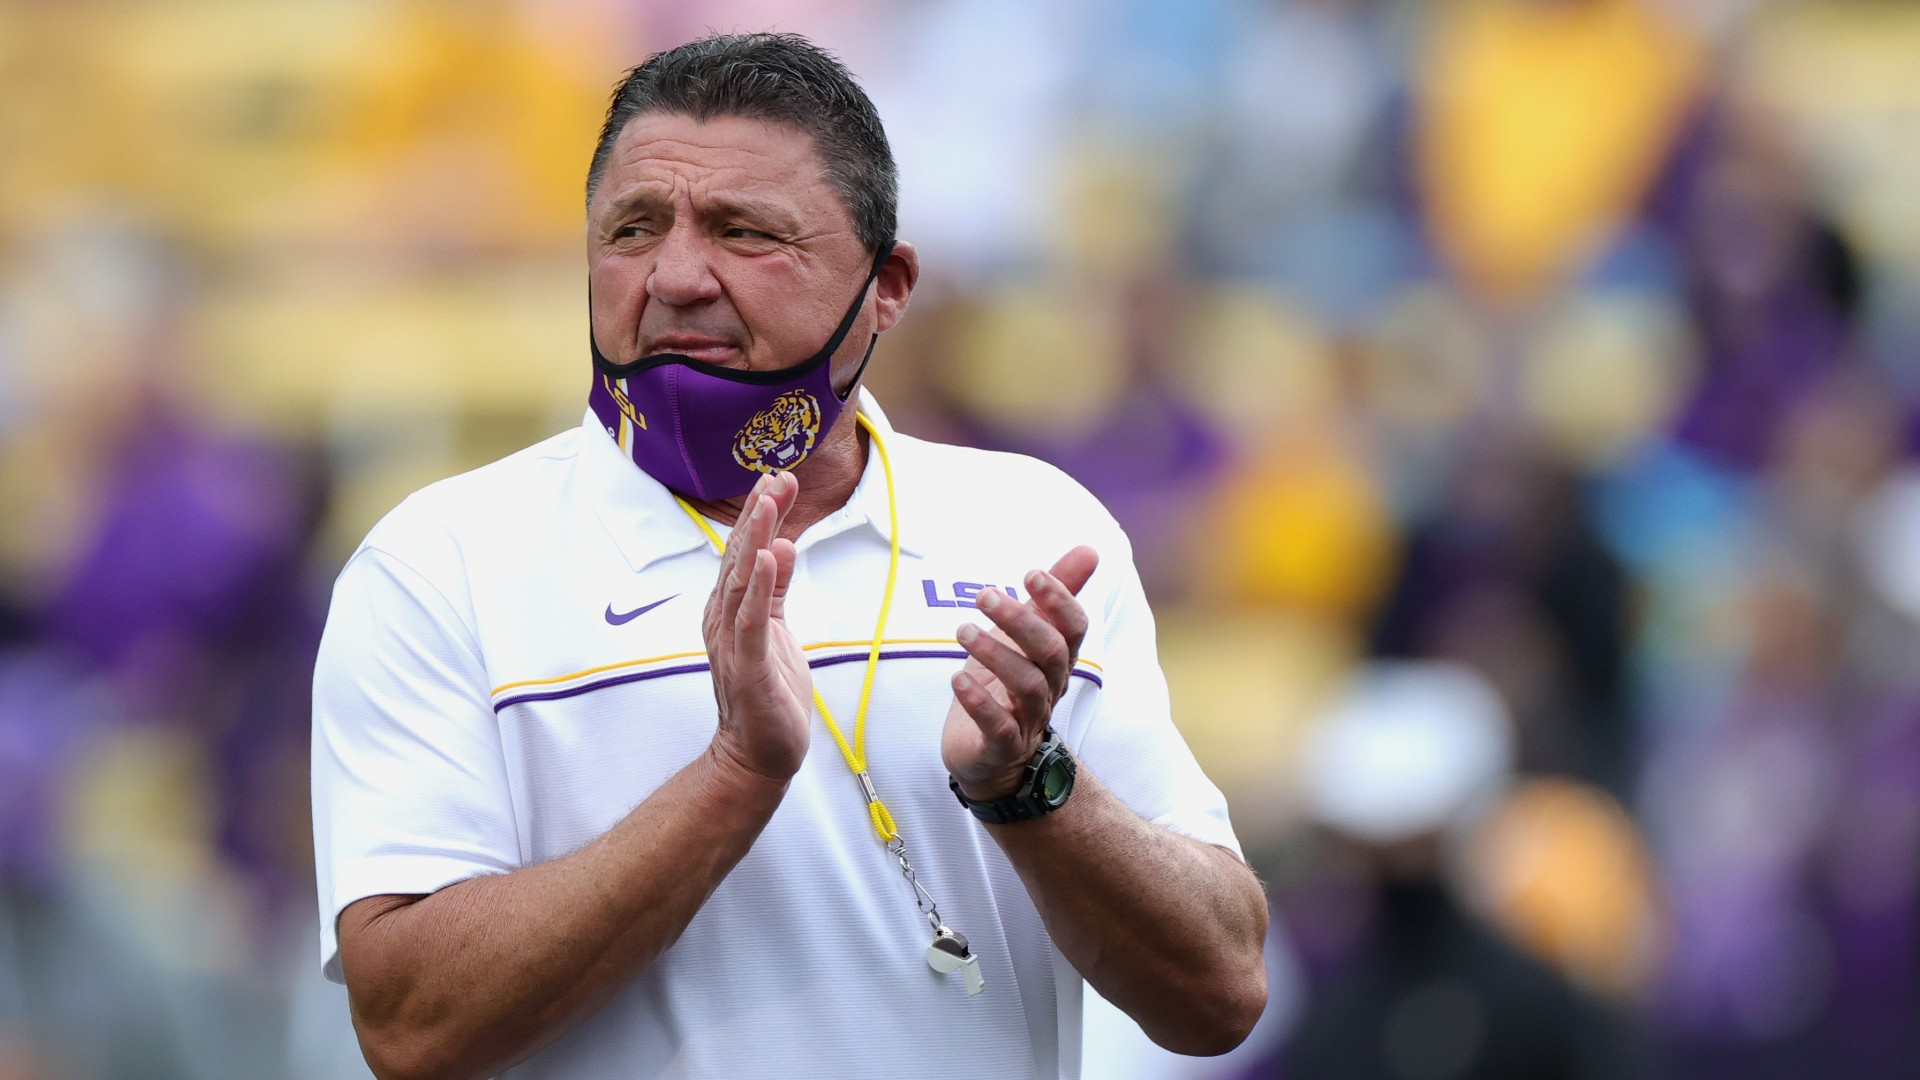 LSU trying to find its way back to the top with new coordinators thumbnail